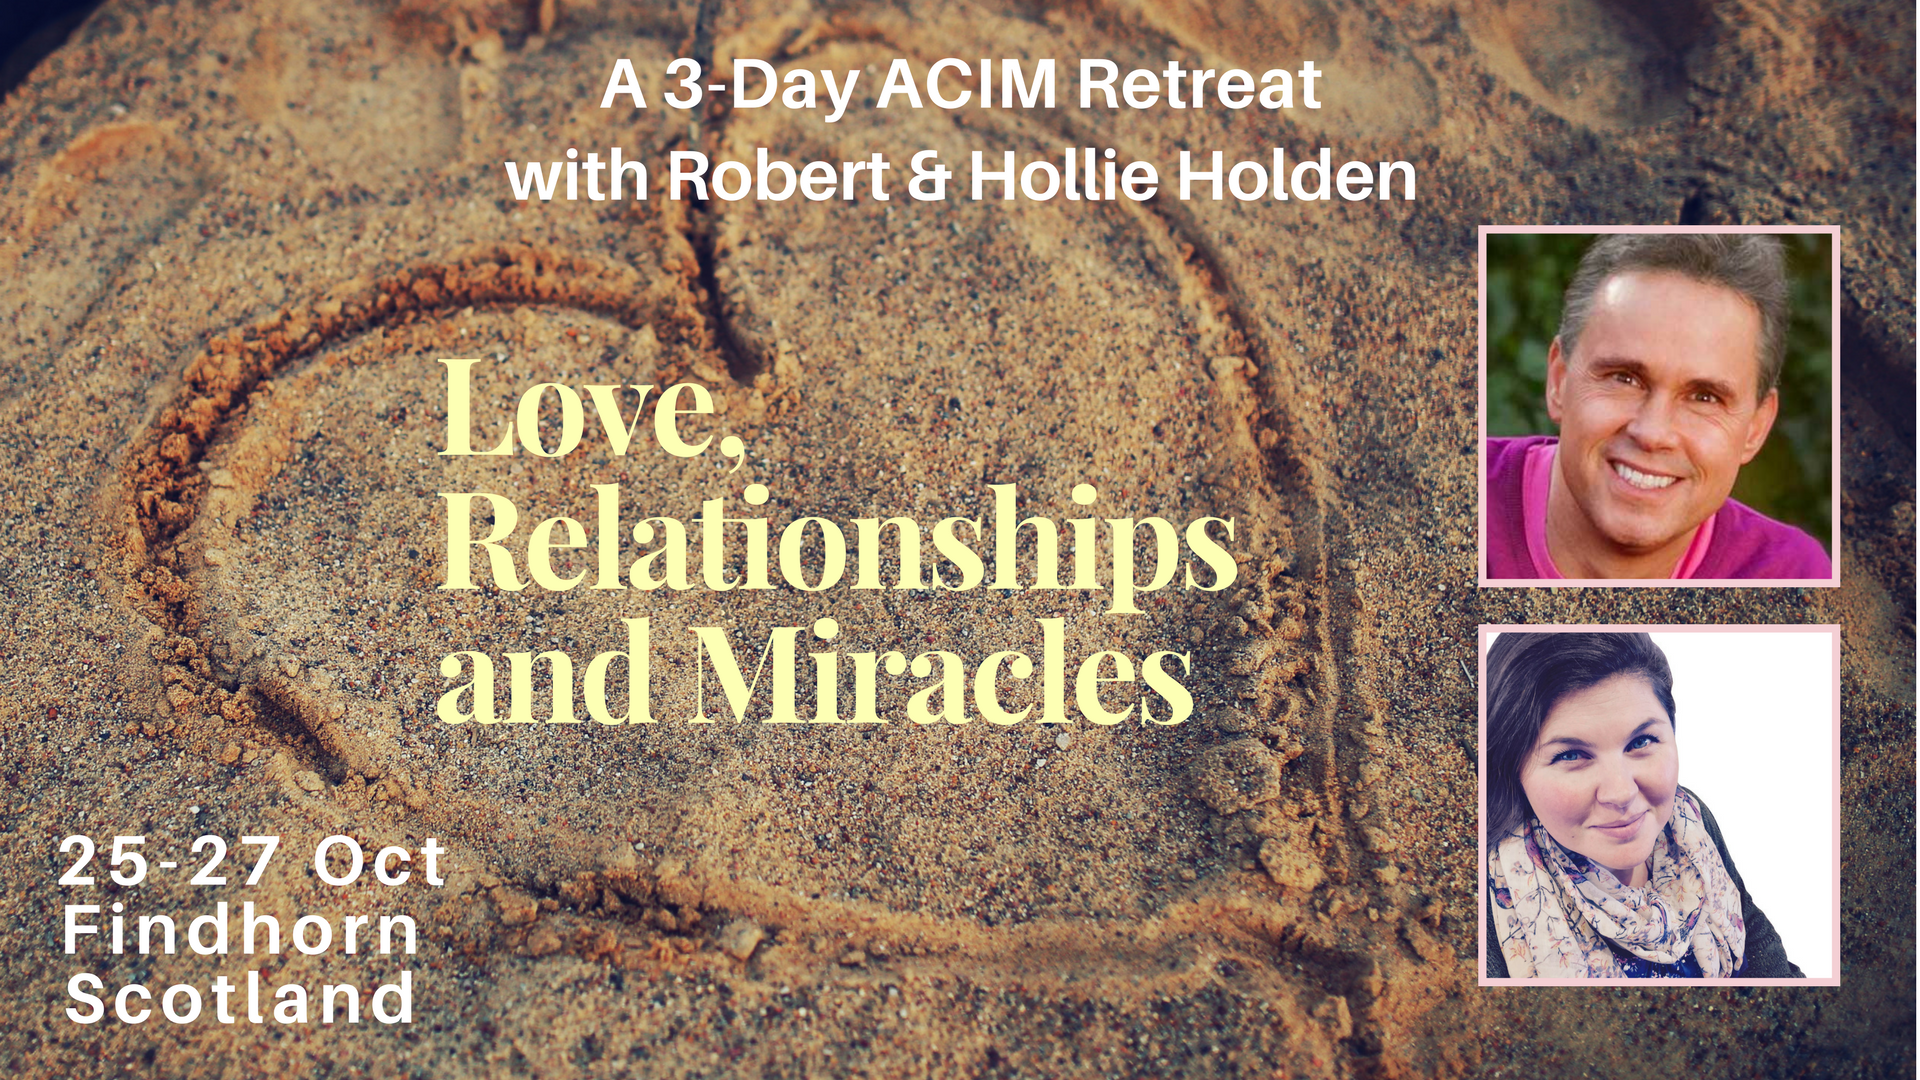 Love, Relationships & Miracles: 3-Day ACIM Retreat